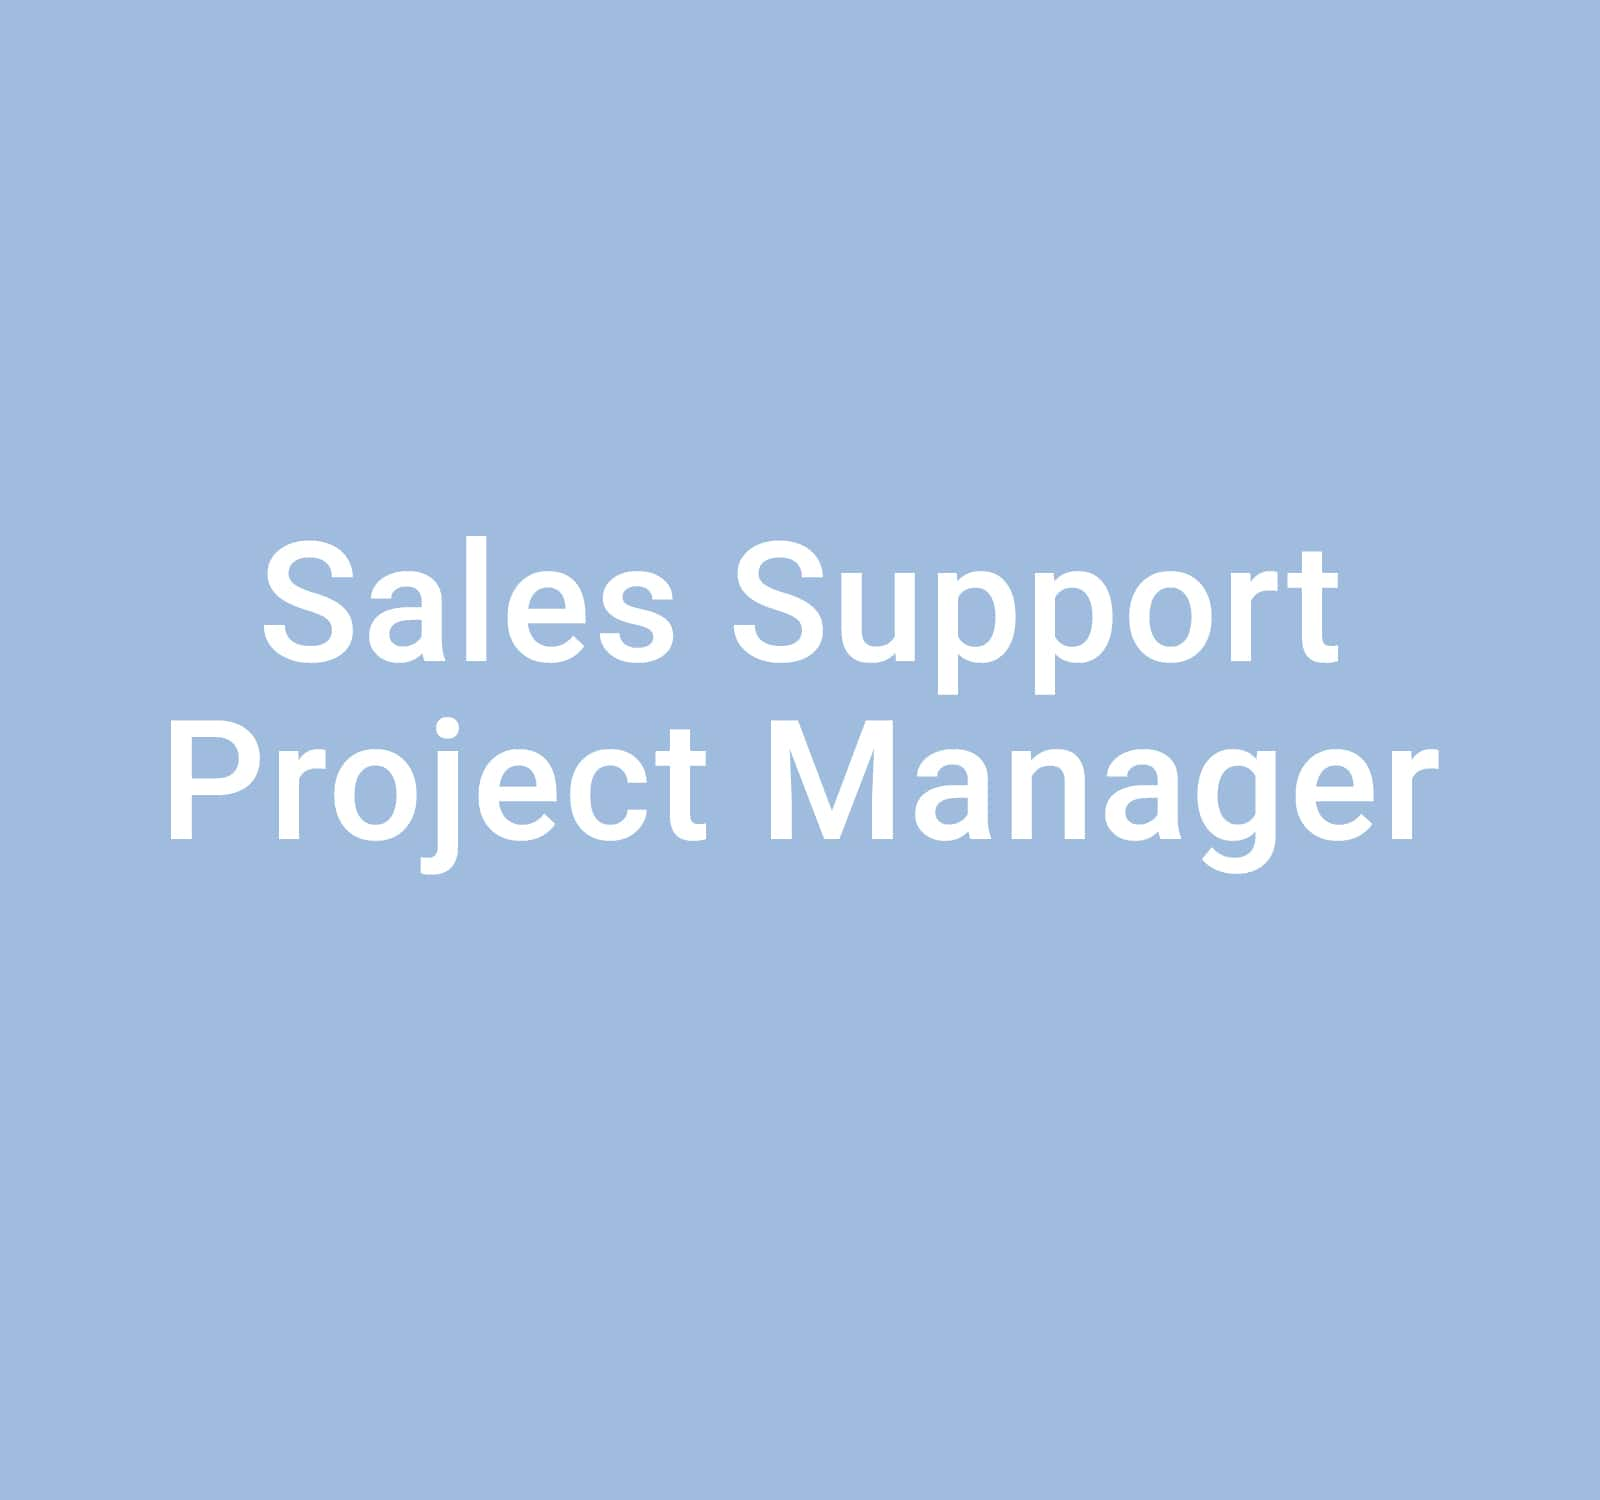 Sales Support Project Manager